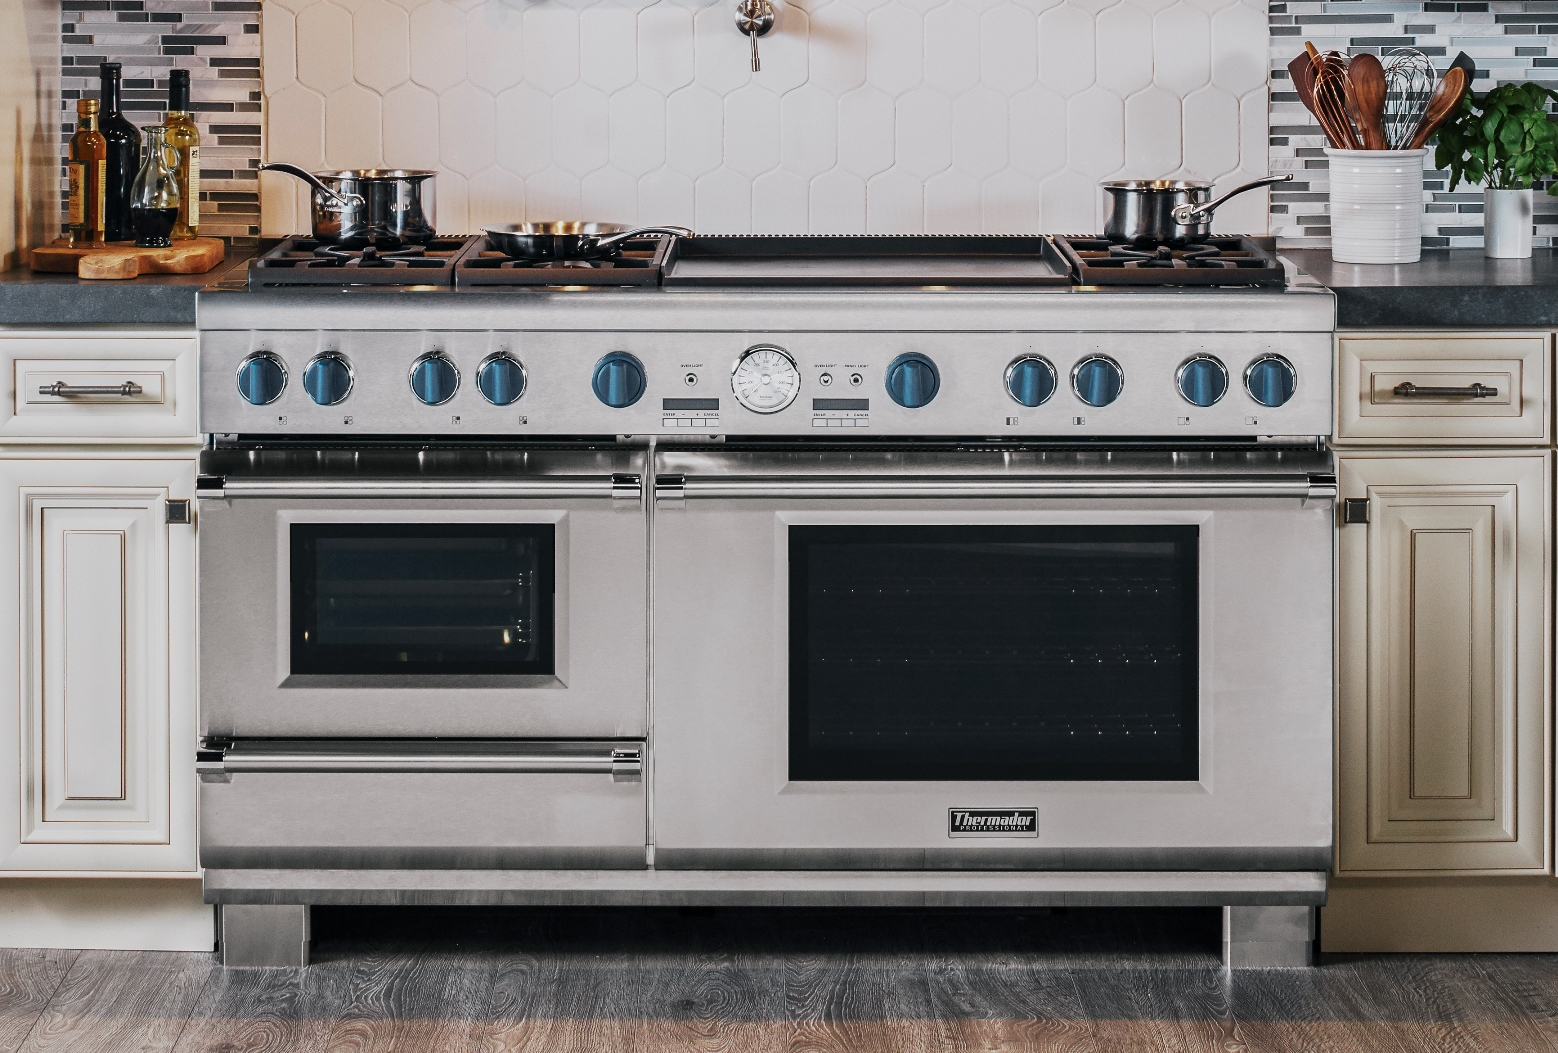 Thermador Home Appliance Blog 60 Inch Pro Grand Steam Range With Blue Knobs Thermador Home Appliance Blog